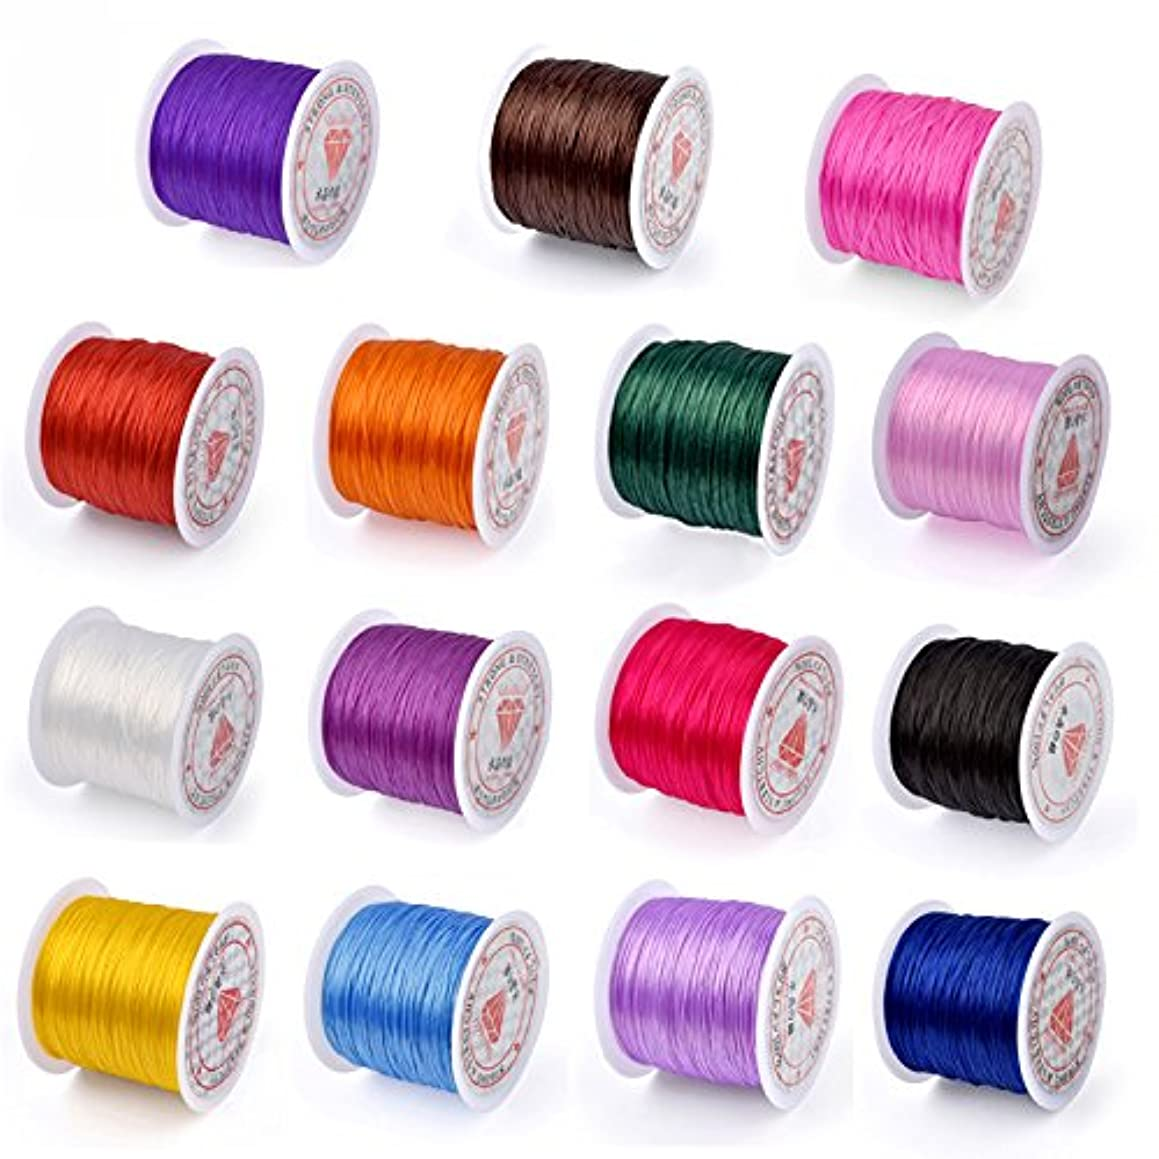 Pandahall 25rolls/bag 0.8mm Elastic Stretch Fibre Wire Jewelry Bracelet Crystal String Cord 10m/roll Mixed Color